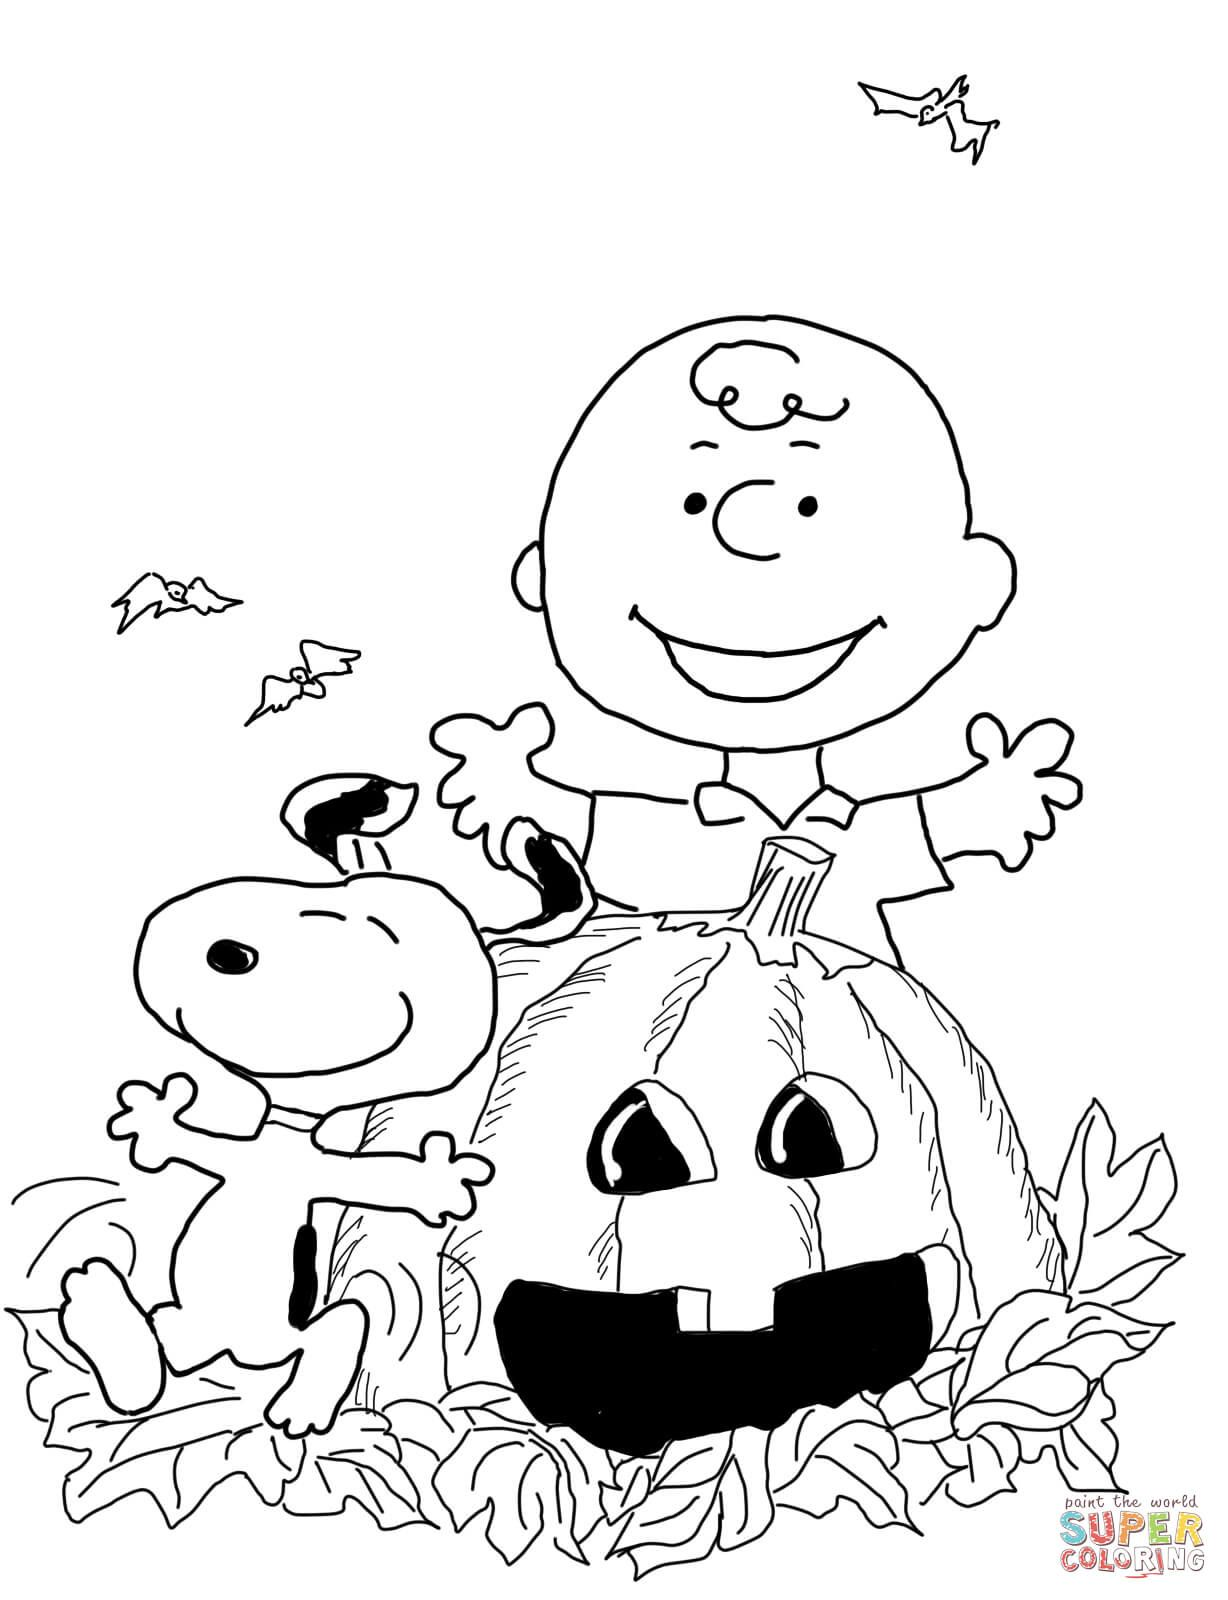 Charlie Brown Halloween Coloring Page From Peanuts Category Select 27571 Printable Crafts Of Cartoons